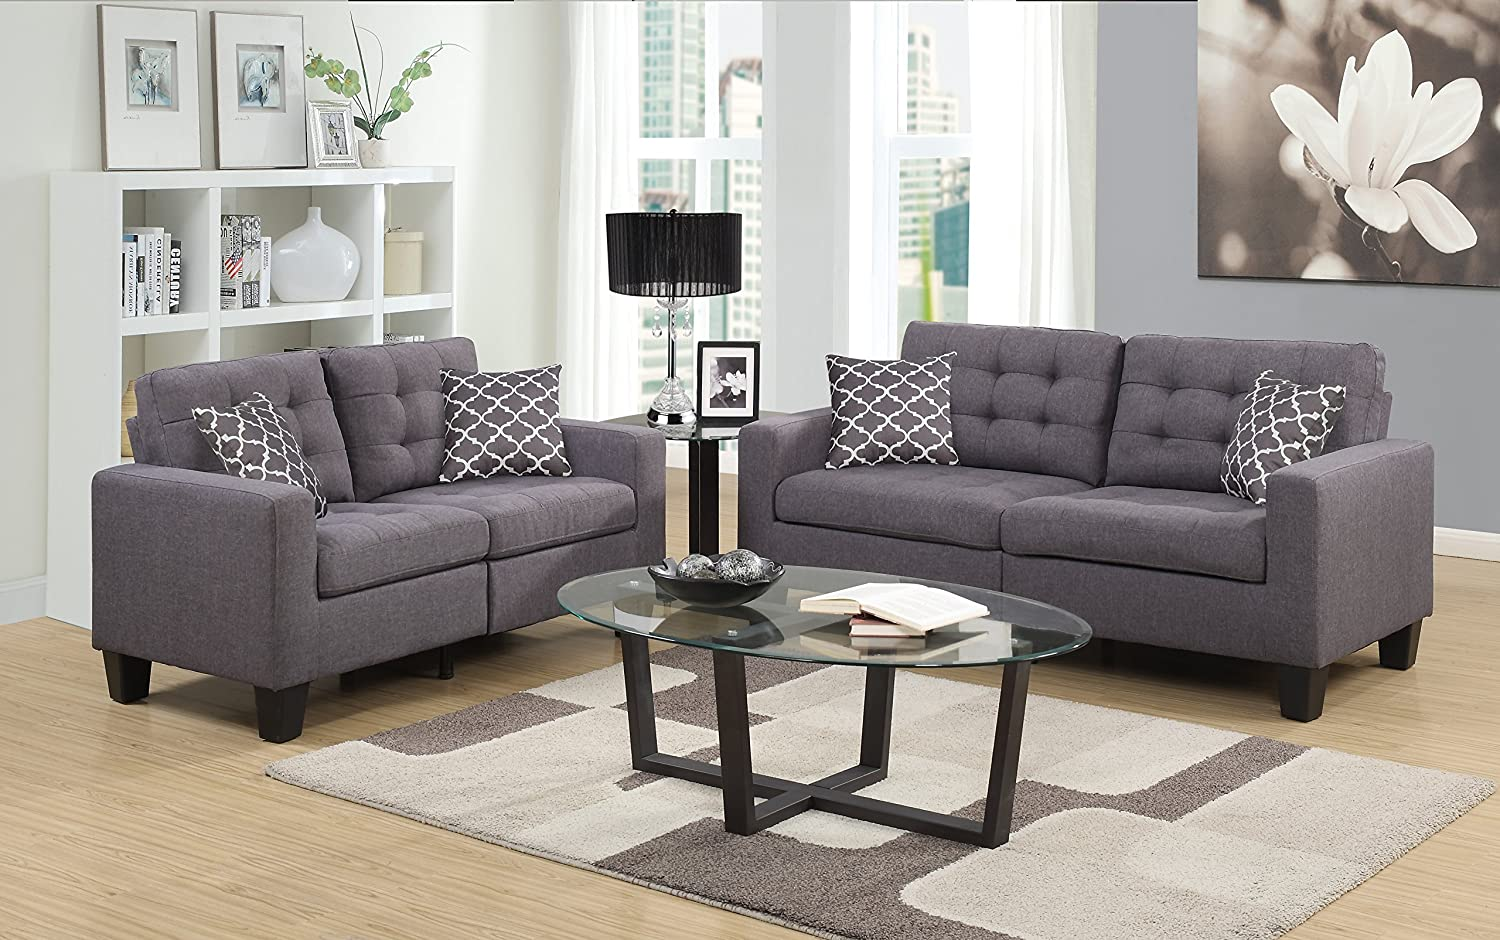 Amazon.com: Home Source U-13379-SL Grey Sofa and Loveseat ...